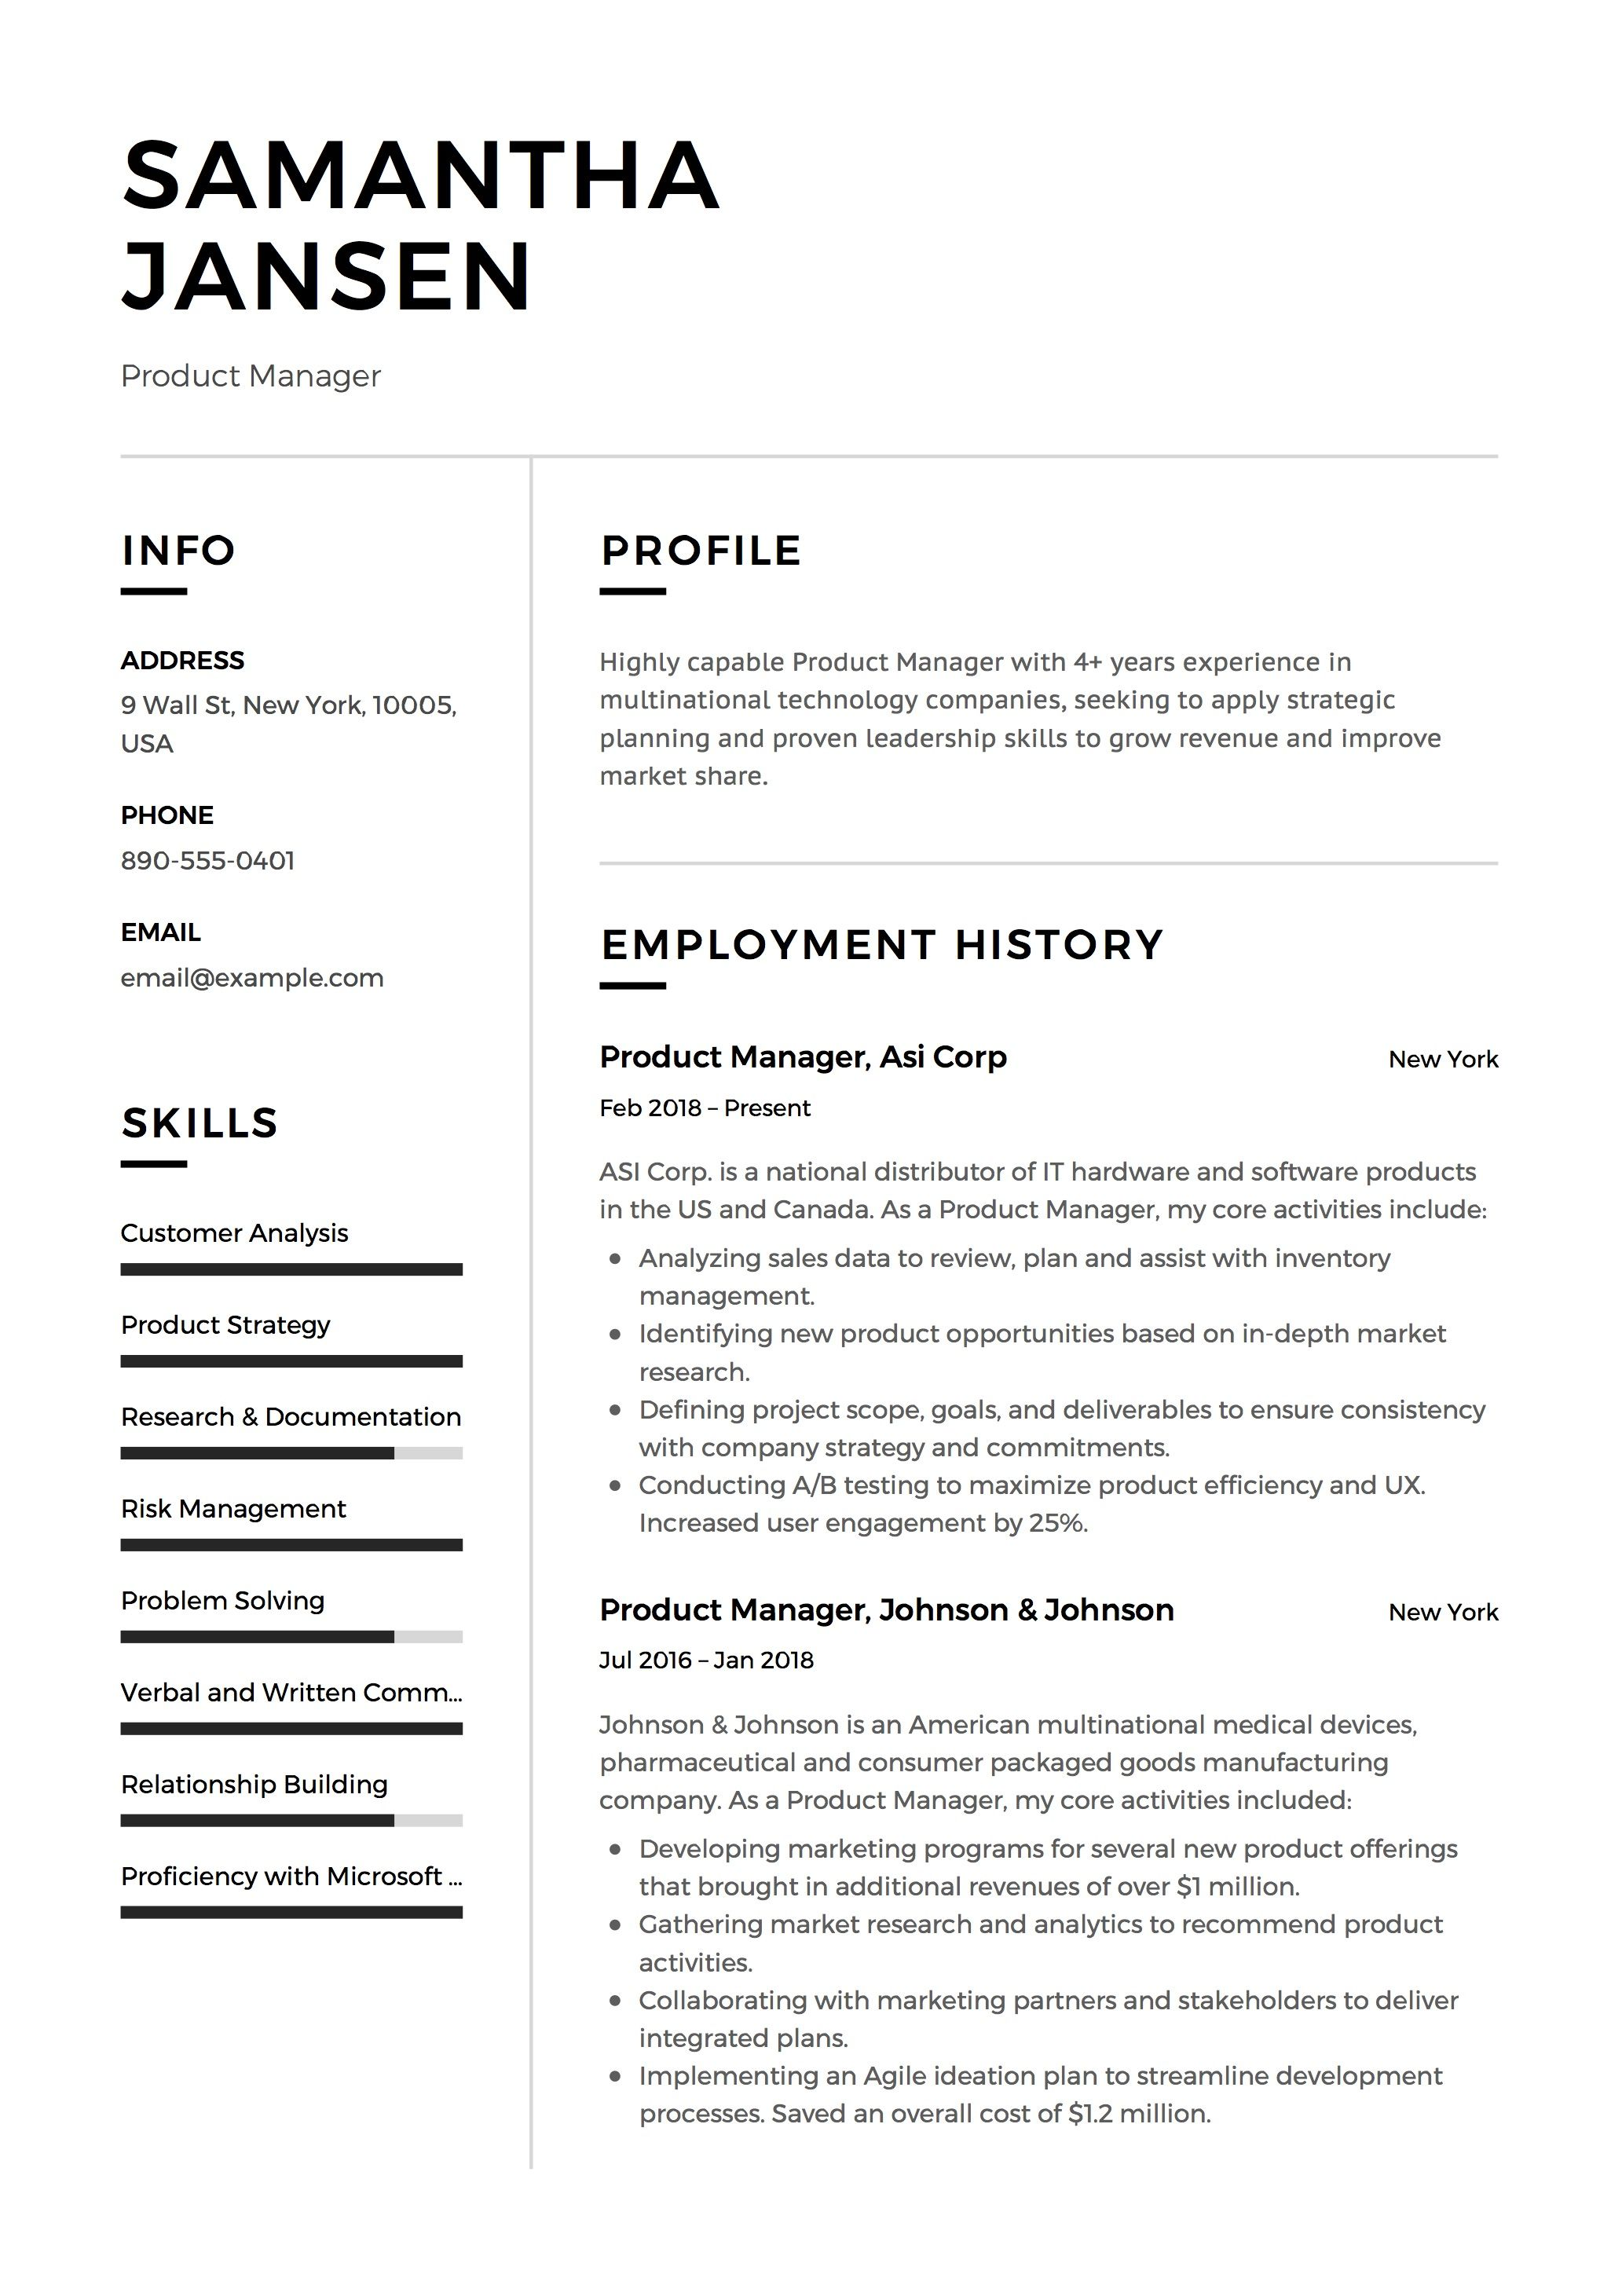 Product Manager Resume Sample Template Example Cv Formal Design Resume Template Examples Student Resume Template Job Resume Examples